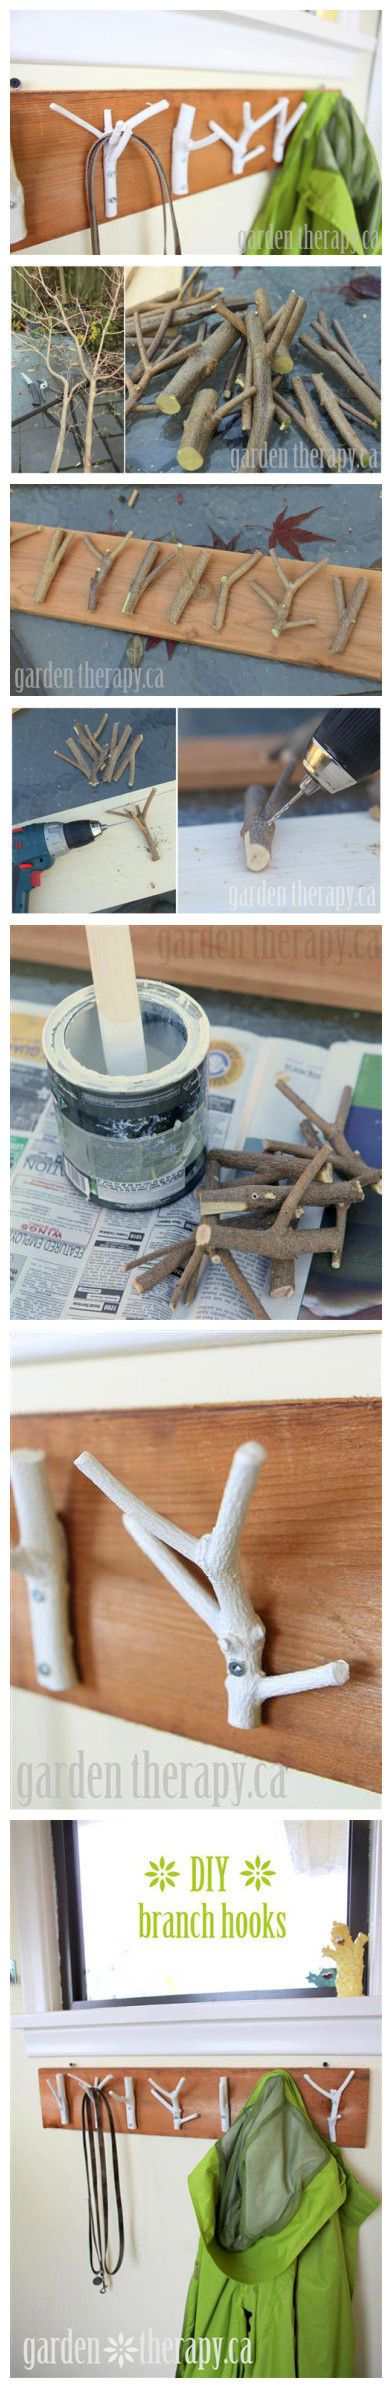 Do It Yourself- Coat Hanger with Brances